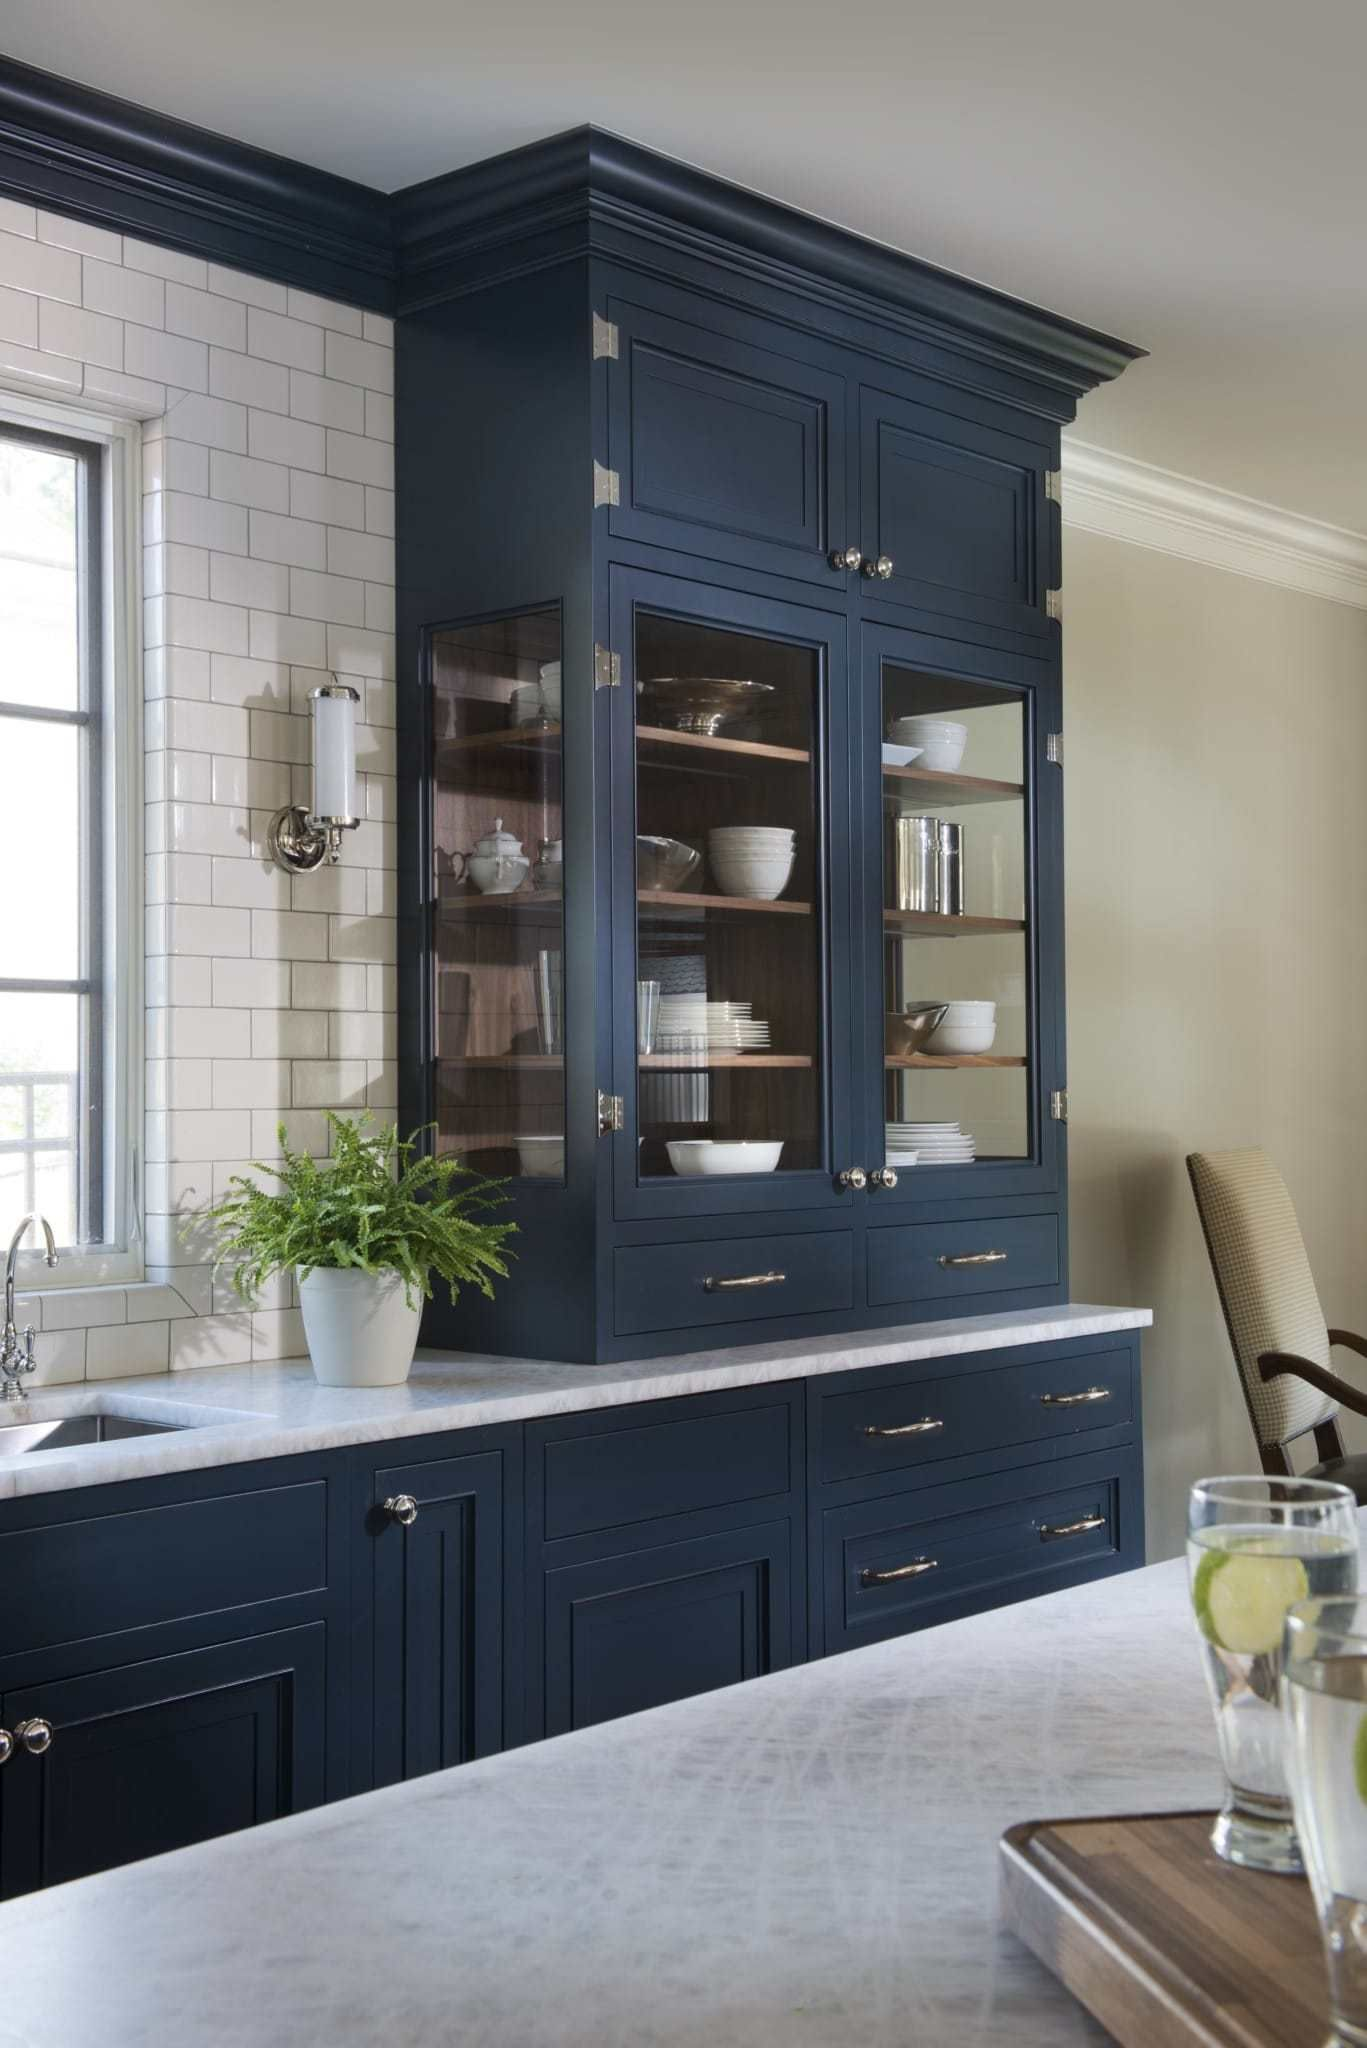 Kitchens Dutch Made Custom Cabinetry Home Decor Kitchen Kitchen Cabinet Design Interior Design Kitchen